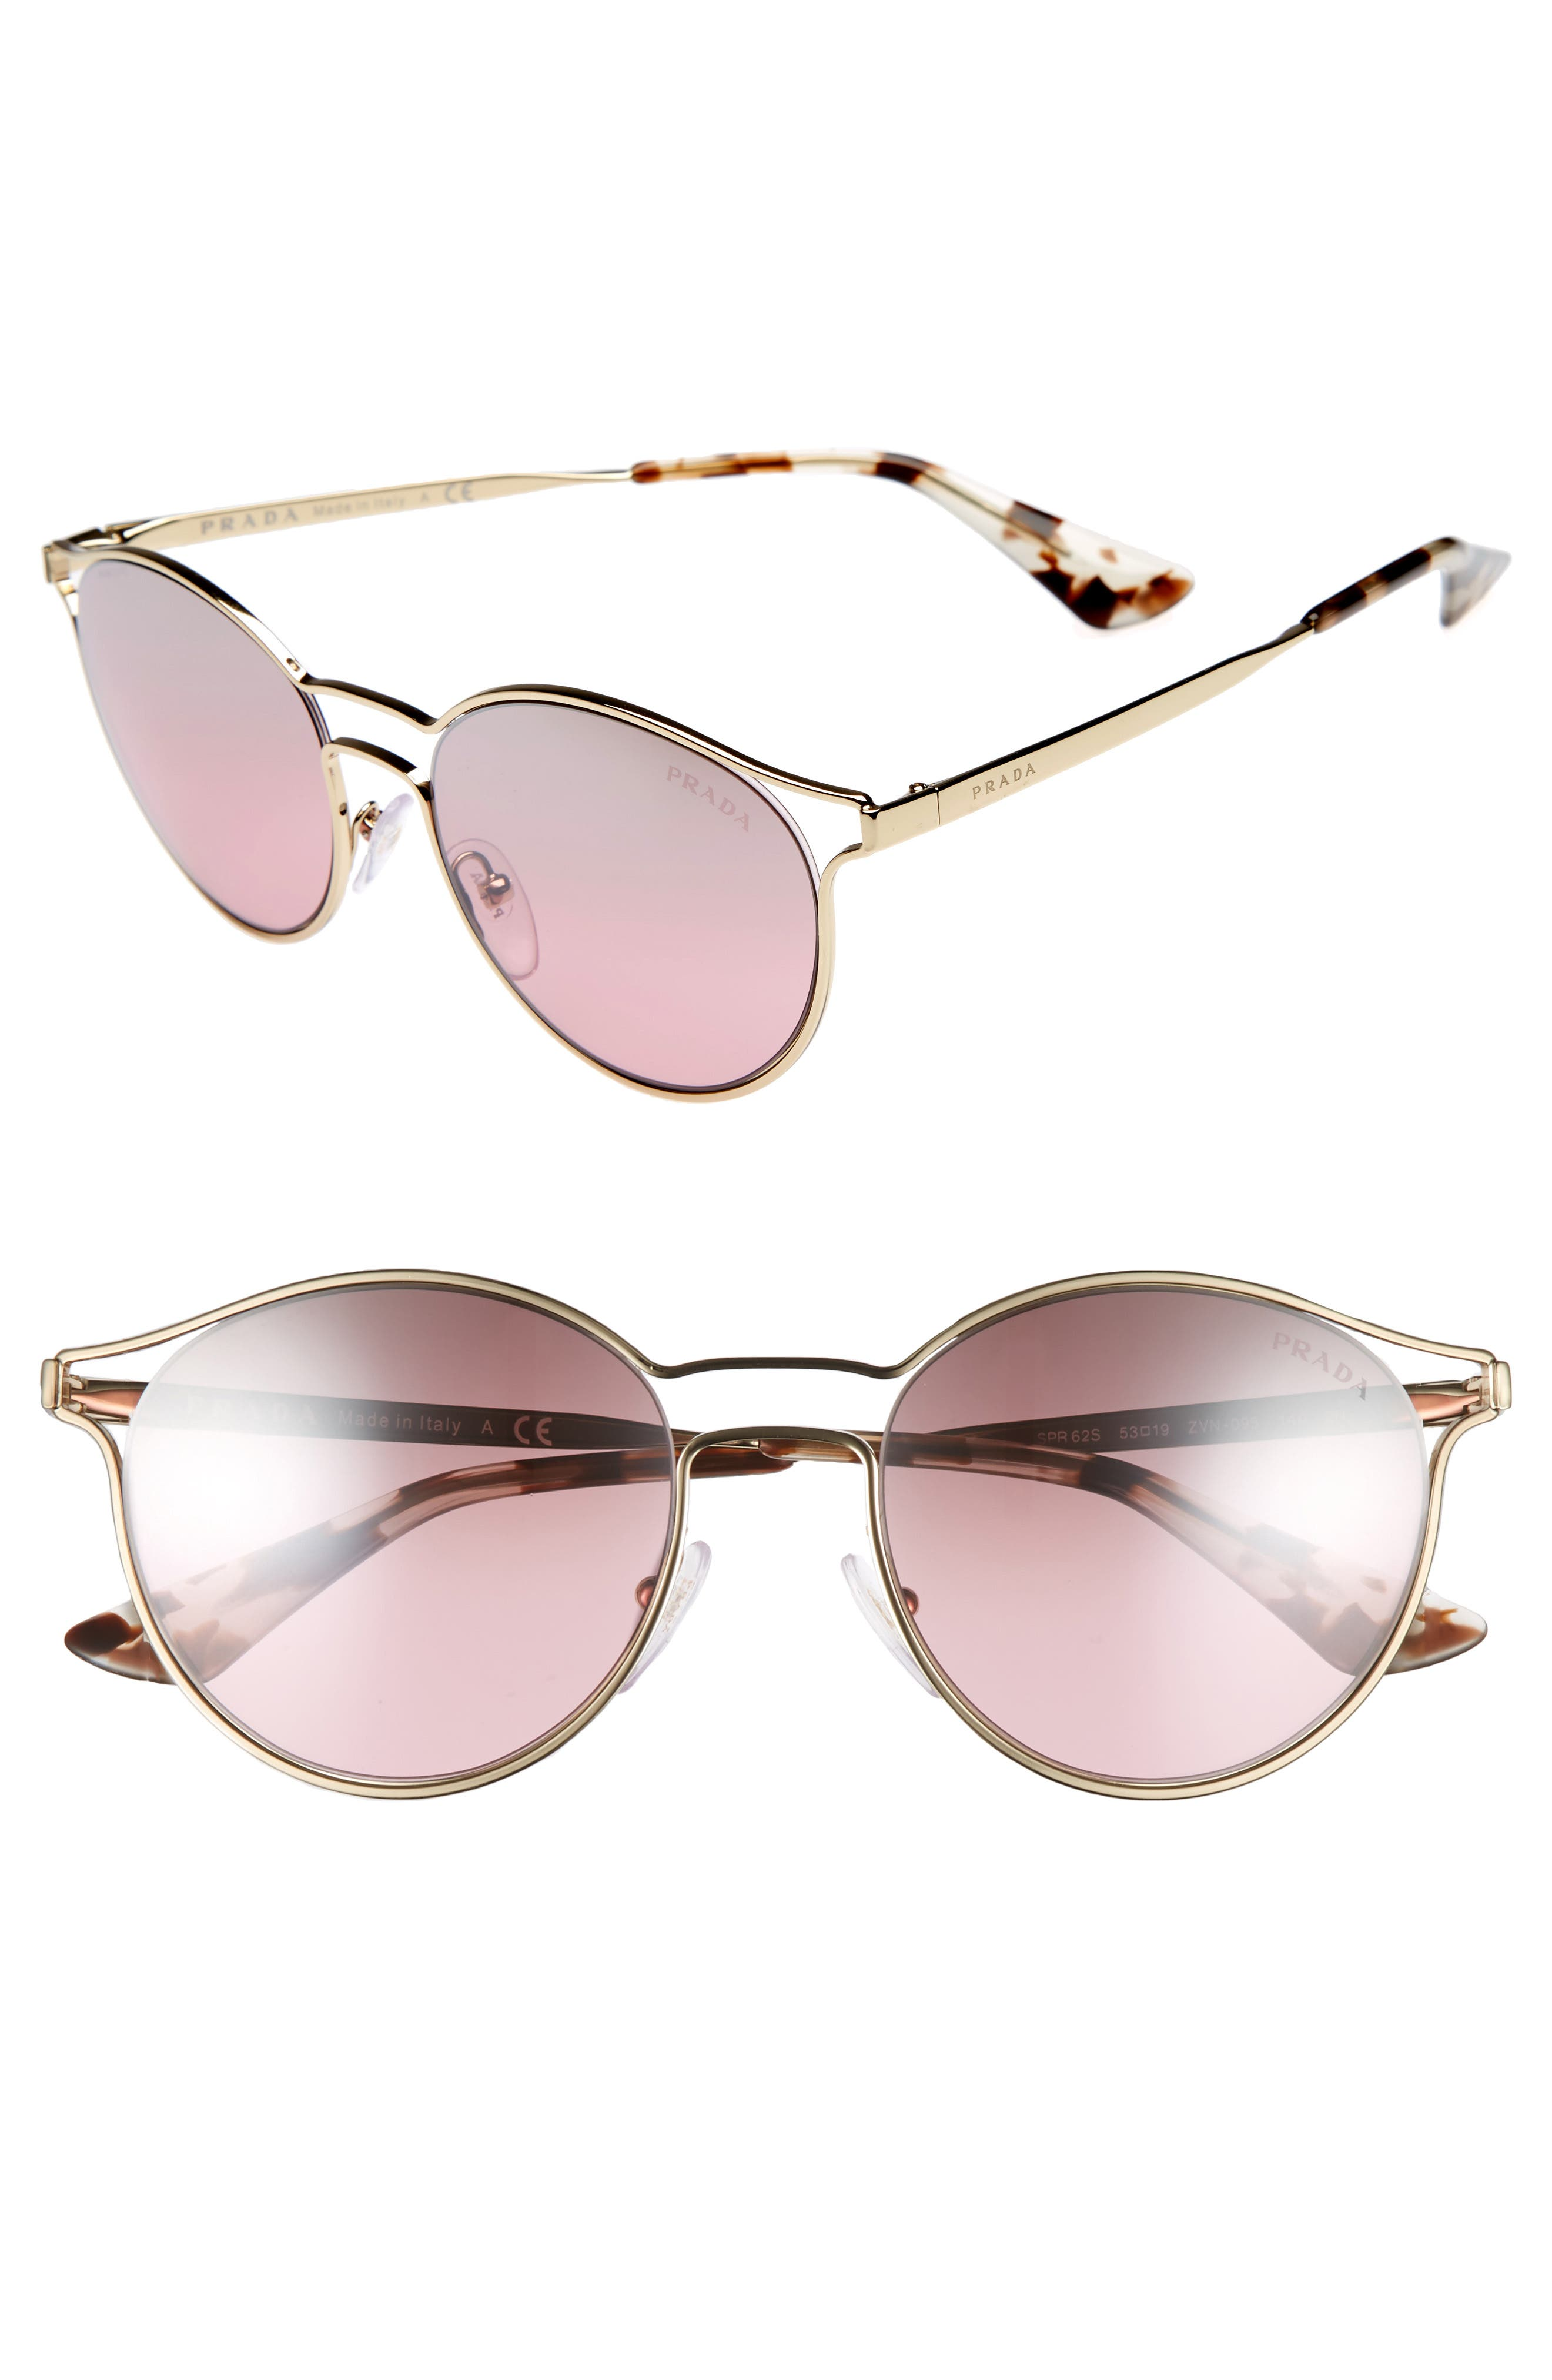 53mm Round Mirrored Sunglasses,                         Main,                         color, Pale Gold